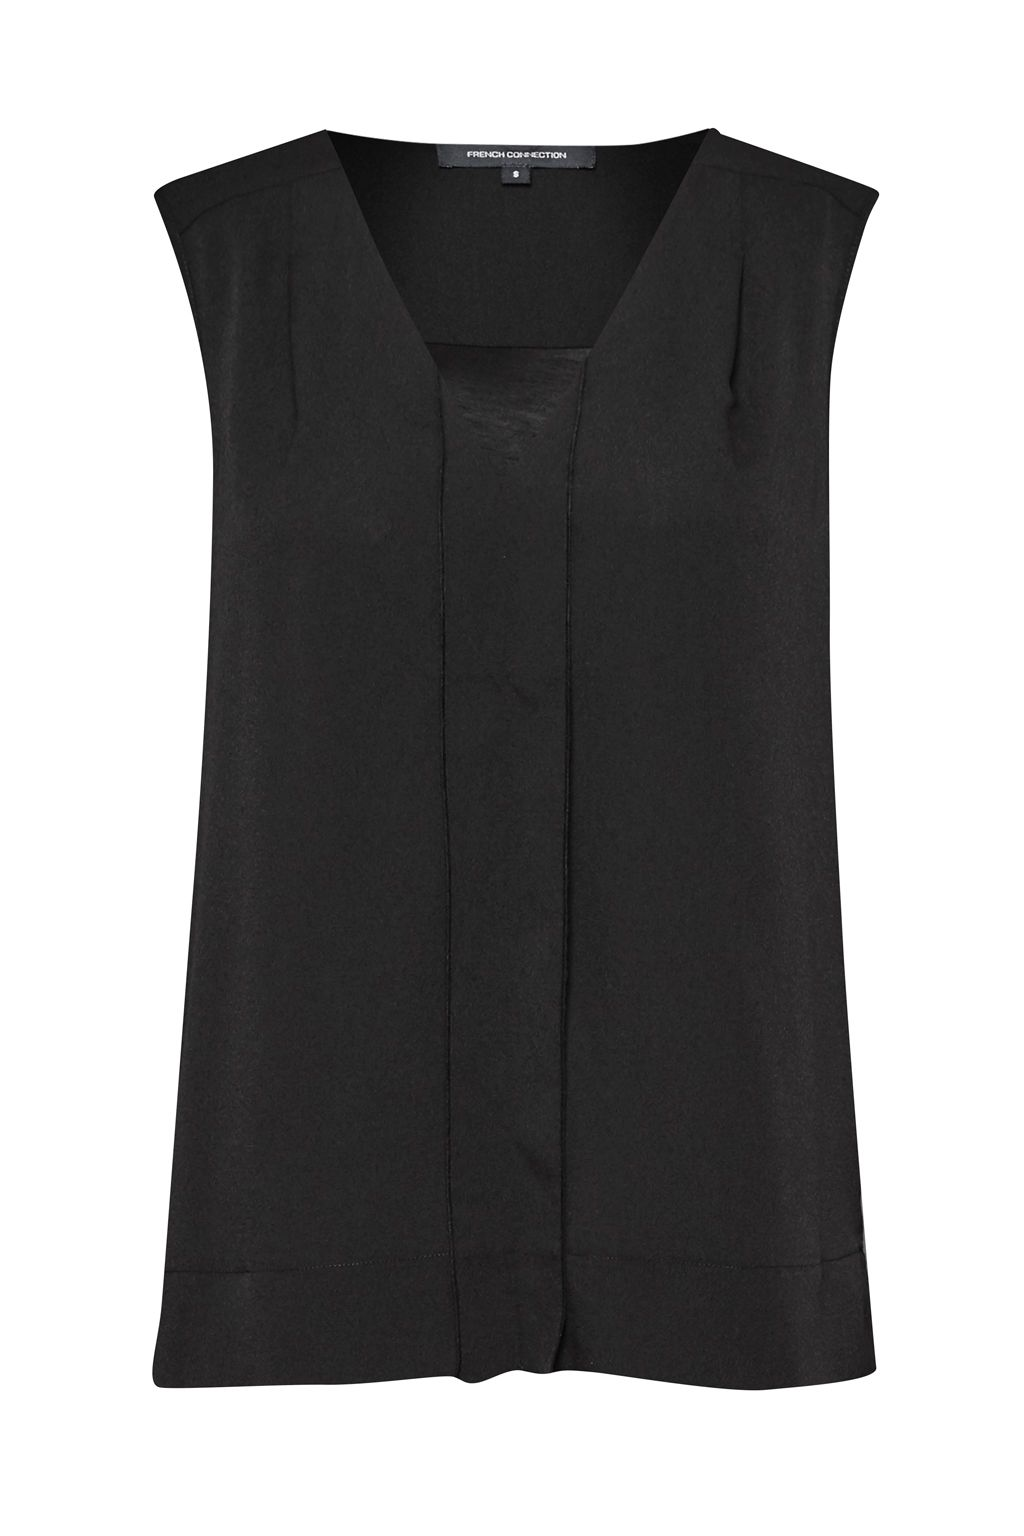 French Connection Polly Plains V Neck Top, Black